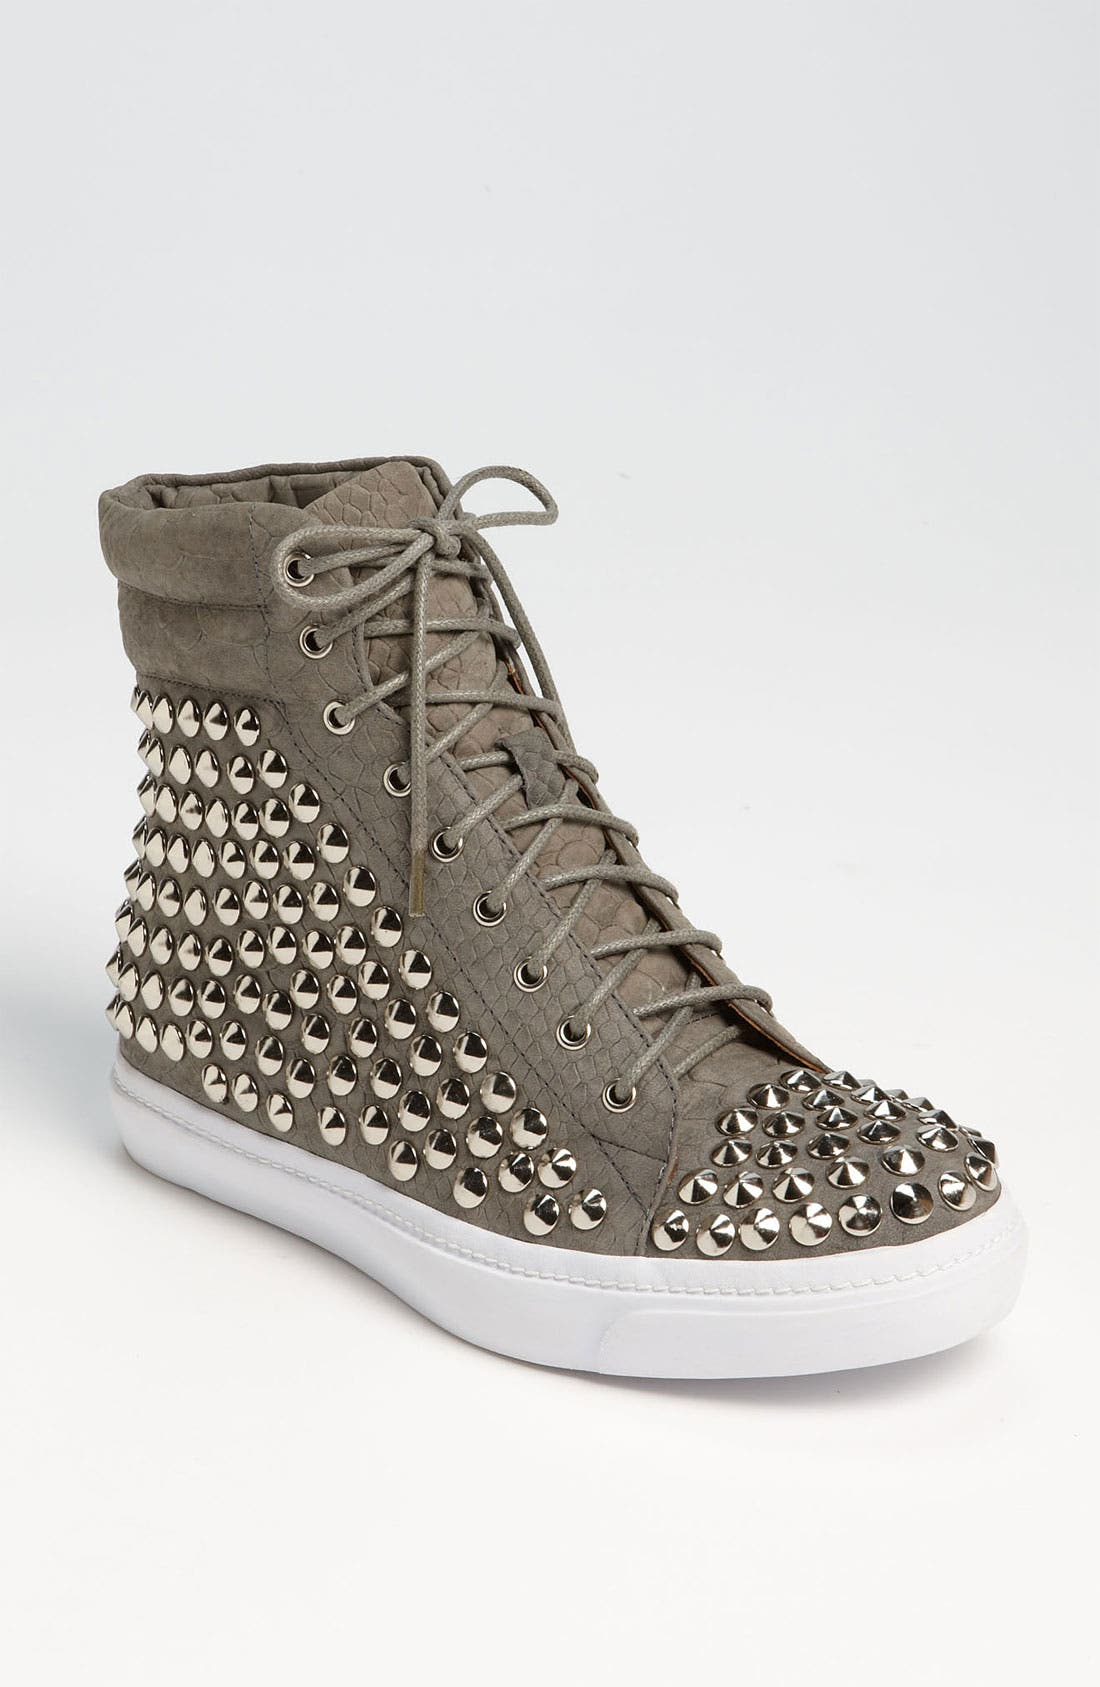 Main Image - Jeffrey Campbell 'Alva' Studded High Top Sneaker